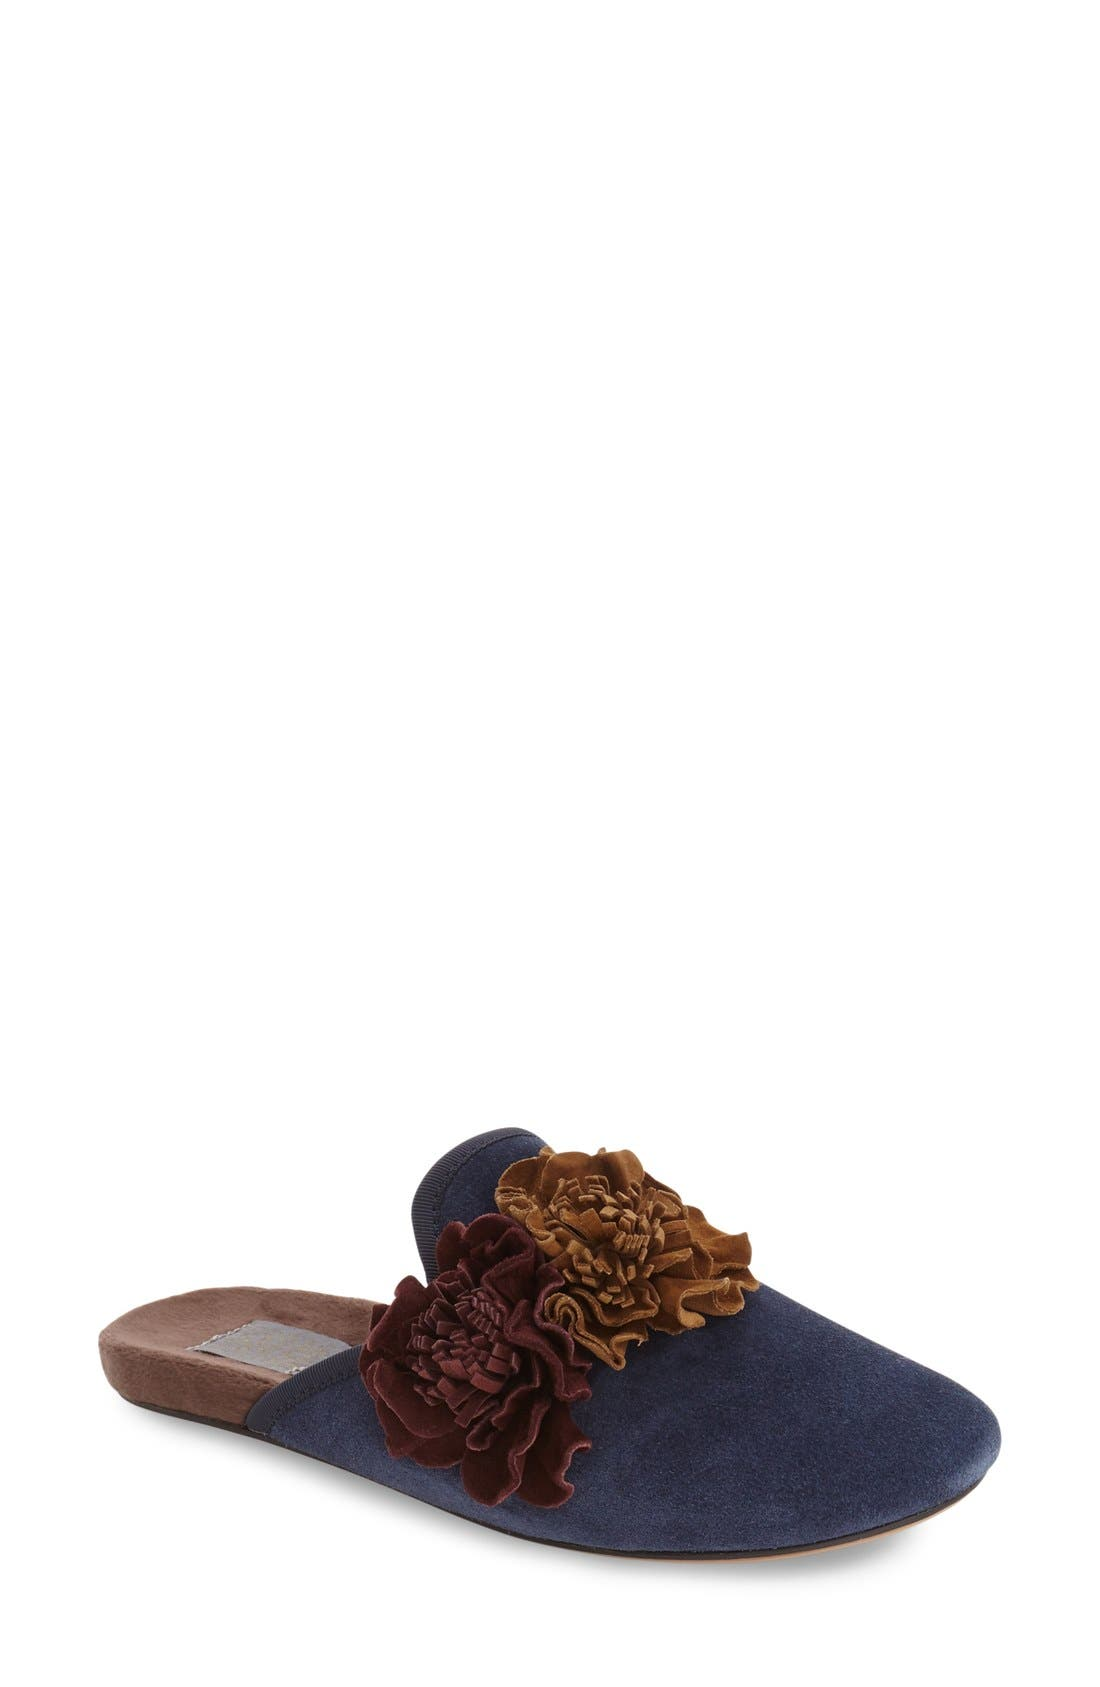 Alternate Image 1 Selected - Daniel Green Lilah Scuff Slipper (Women)